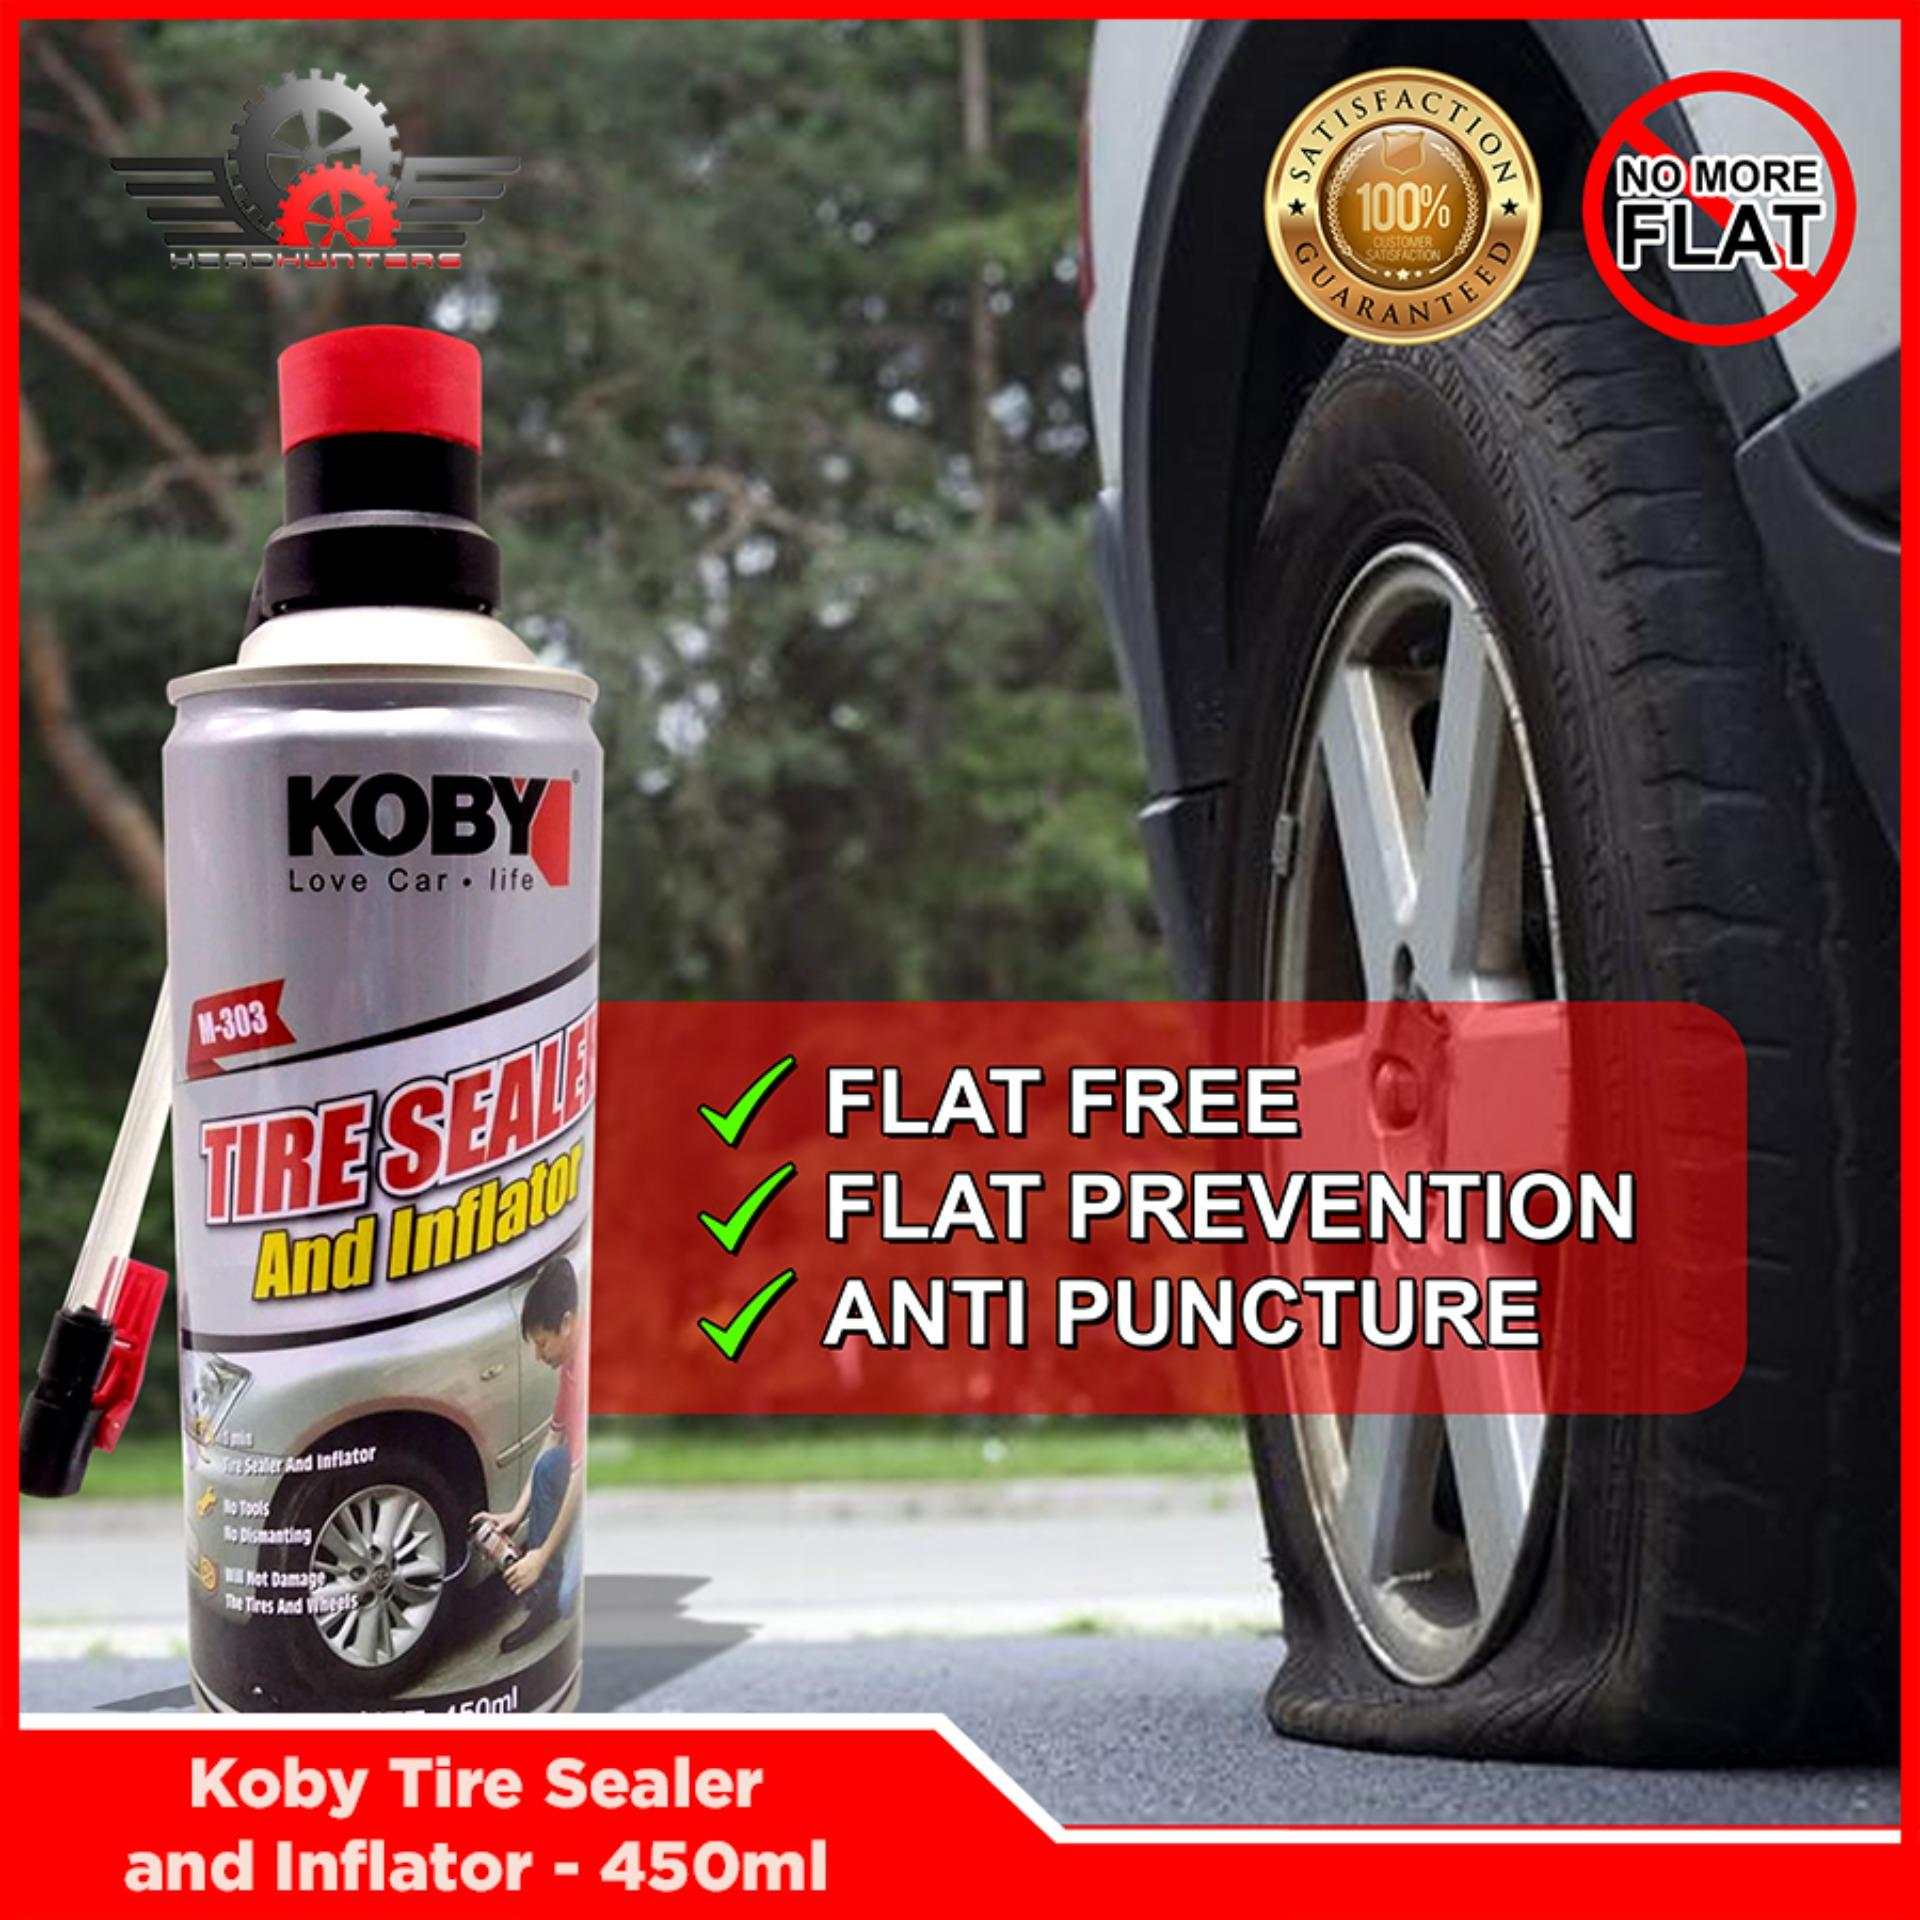 Koby Tire Sealer And Inflator - 450ml By Head Hunters.